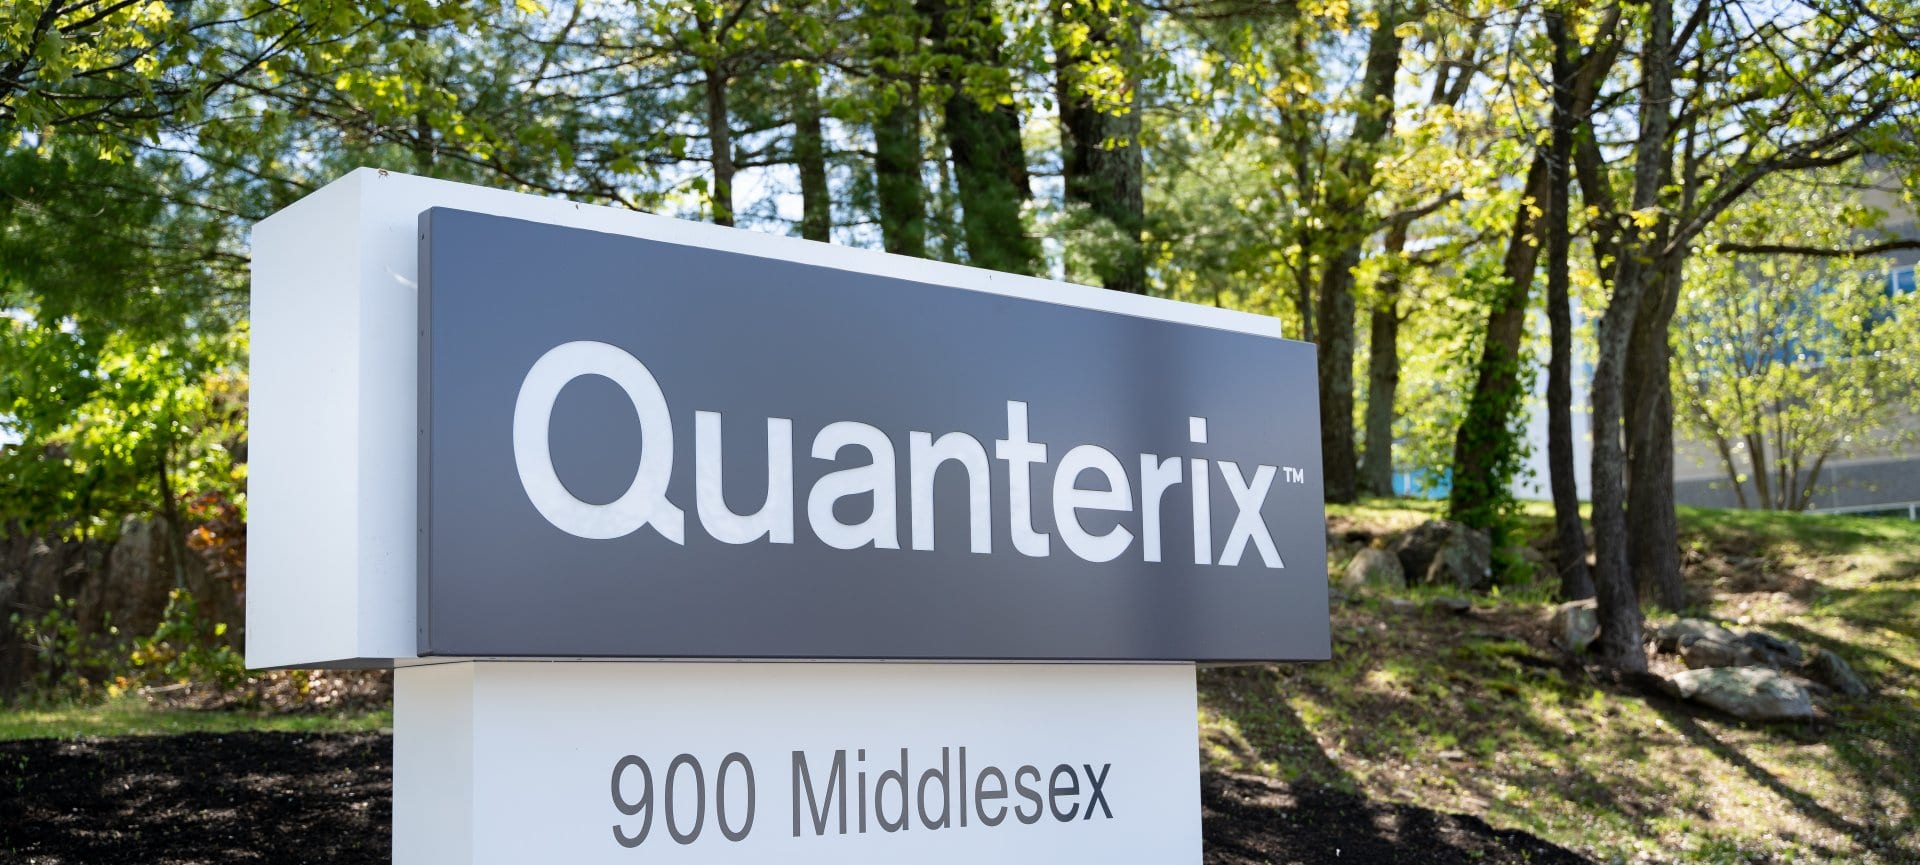 Quanterix To Present At The Canaccord Genuity 39th Annual Growth Conference thumbnail image